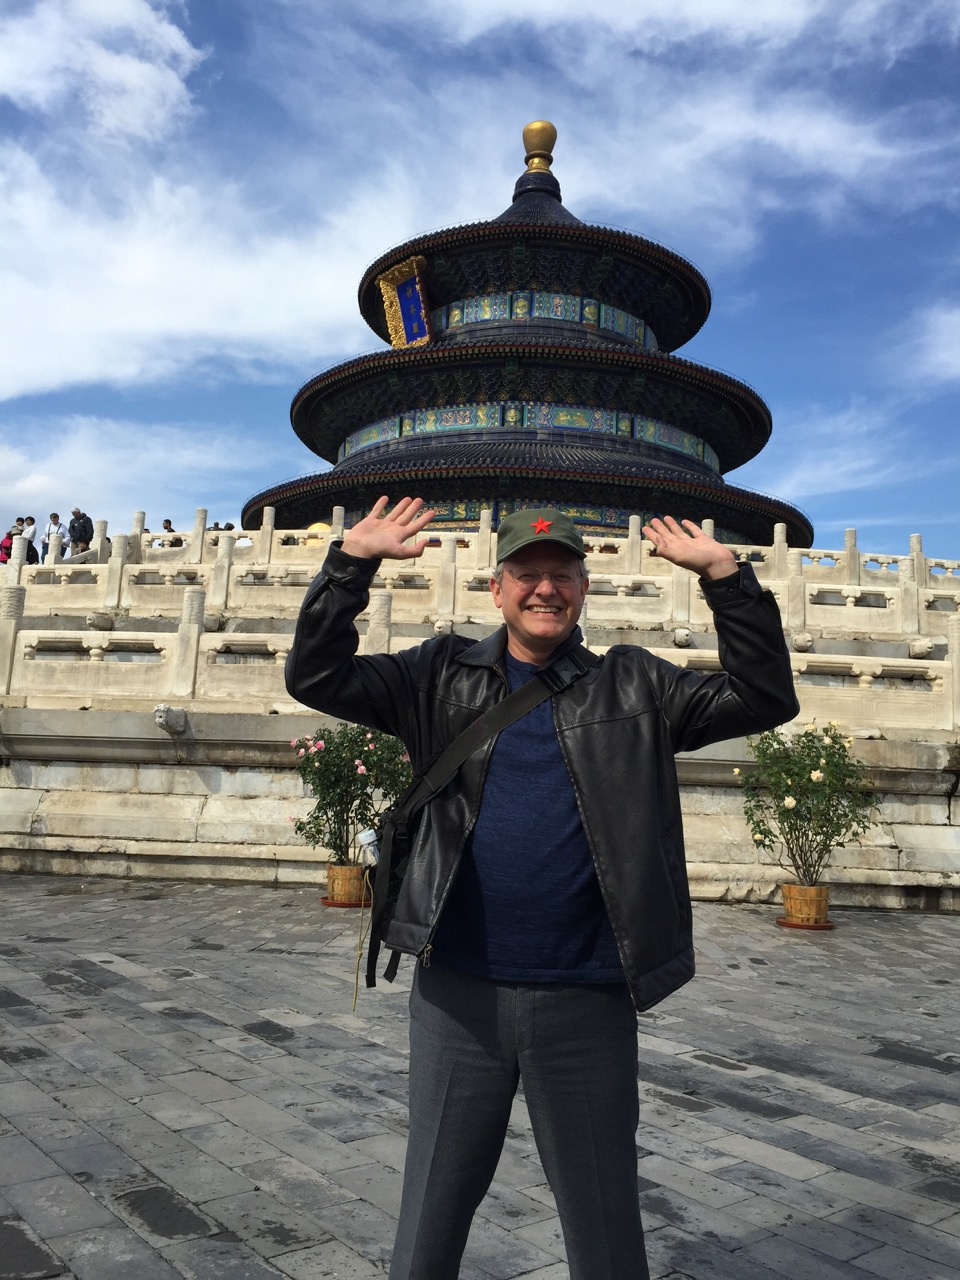 Holding up the Temple of Heaven